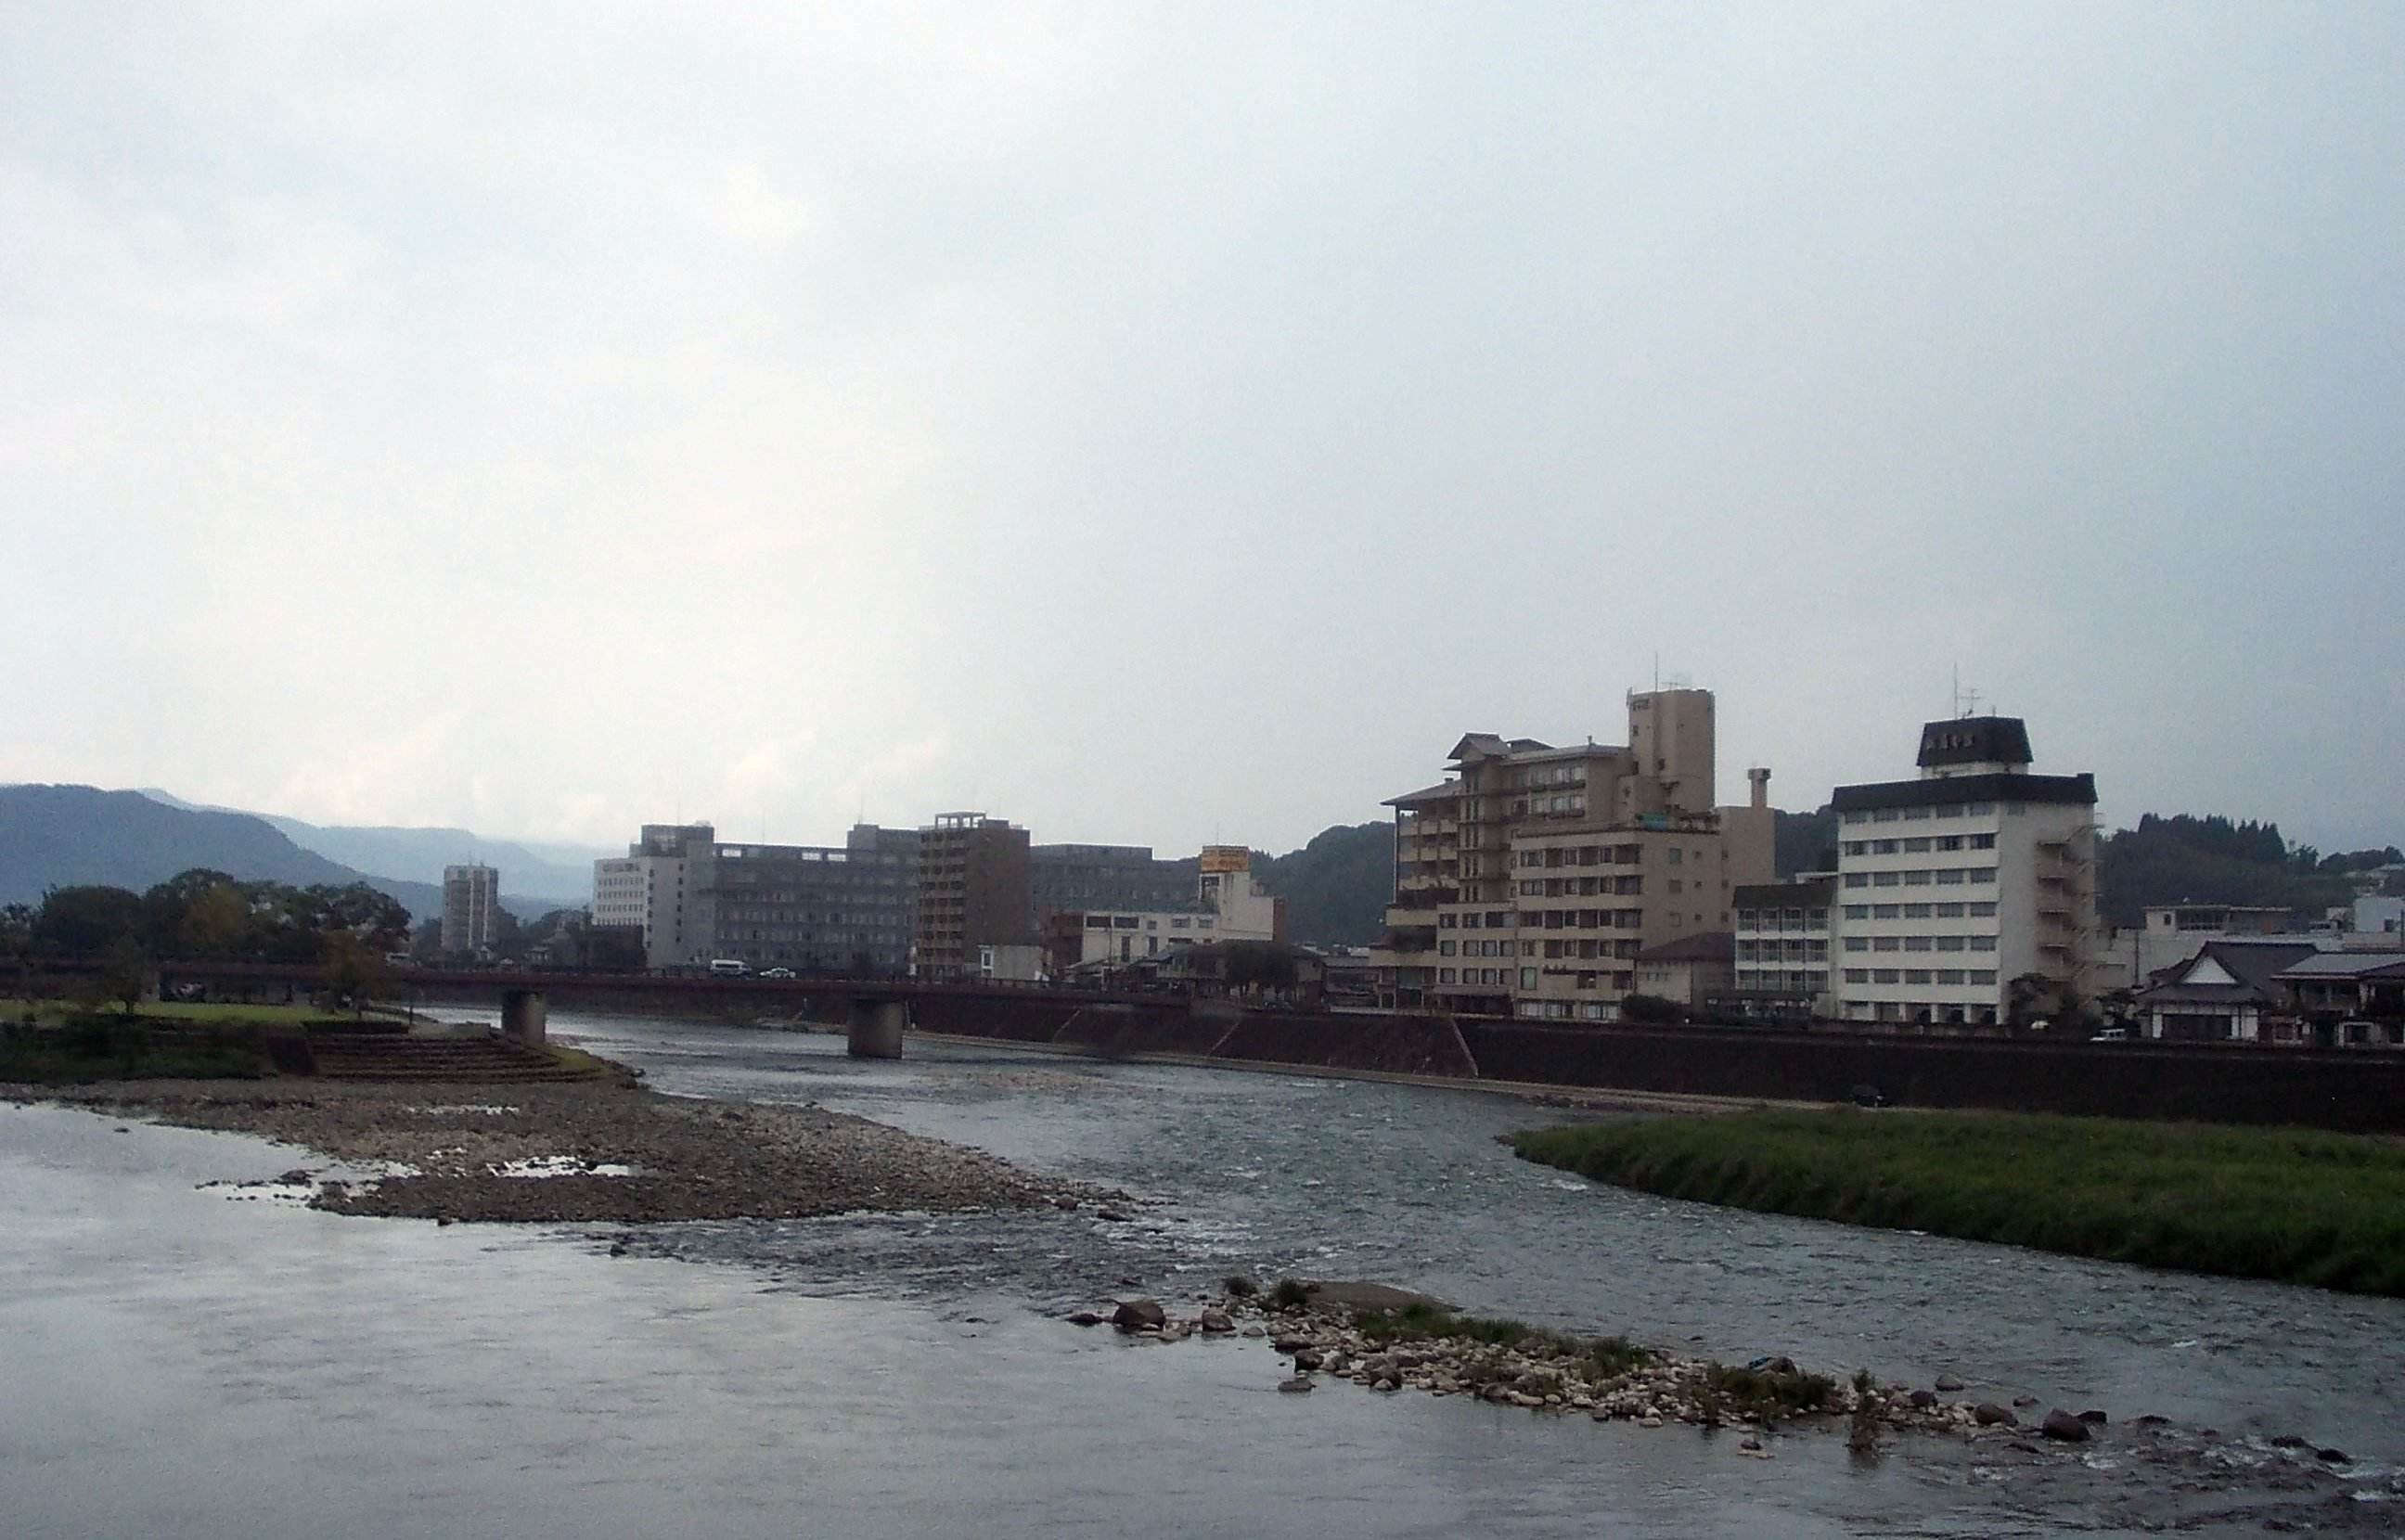 https://upload.wikimedia.org/wikipedia/commons/c/c8/Kuma_River_in_Hitoyoshi.jpg